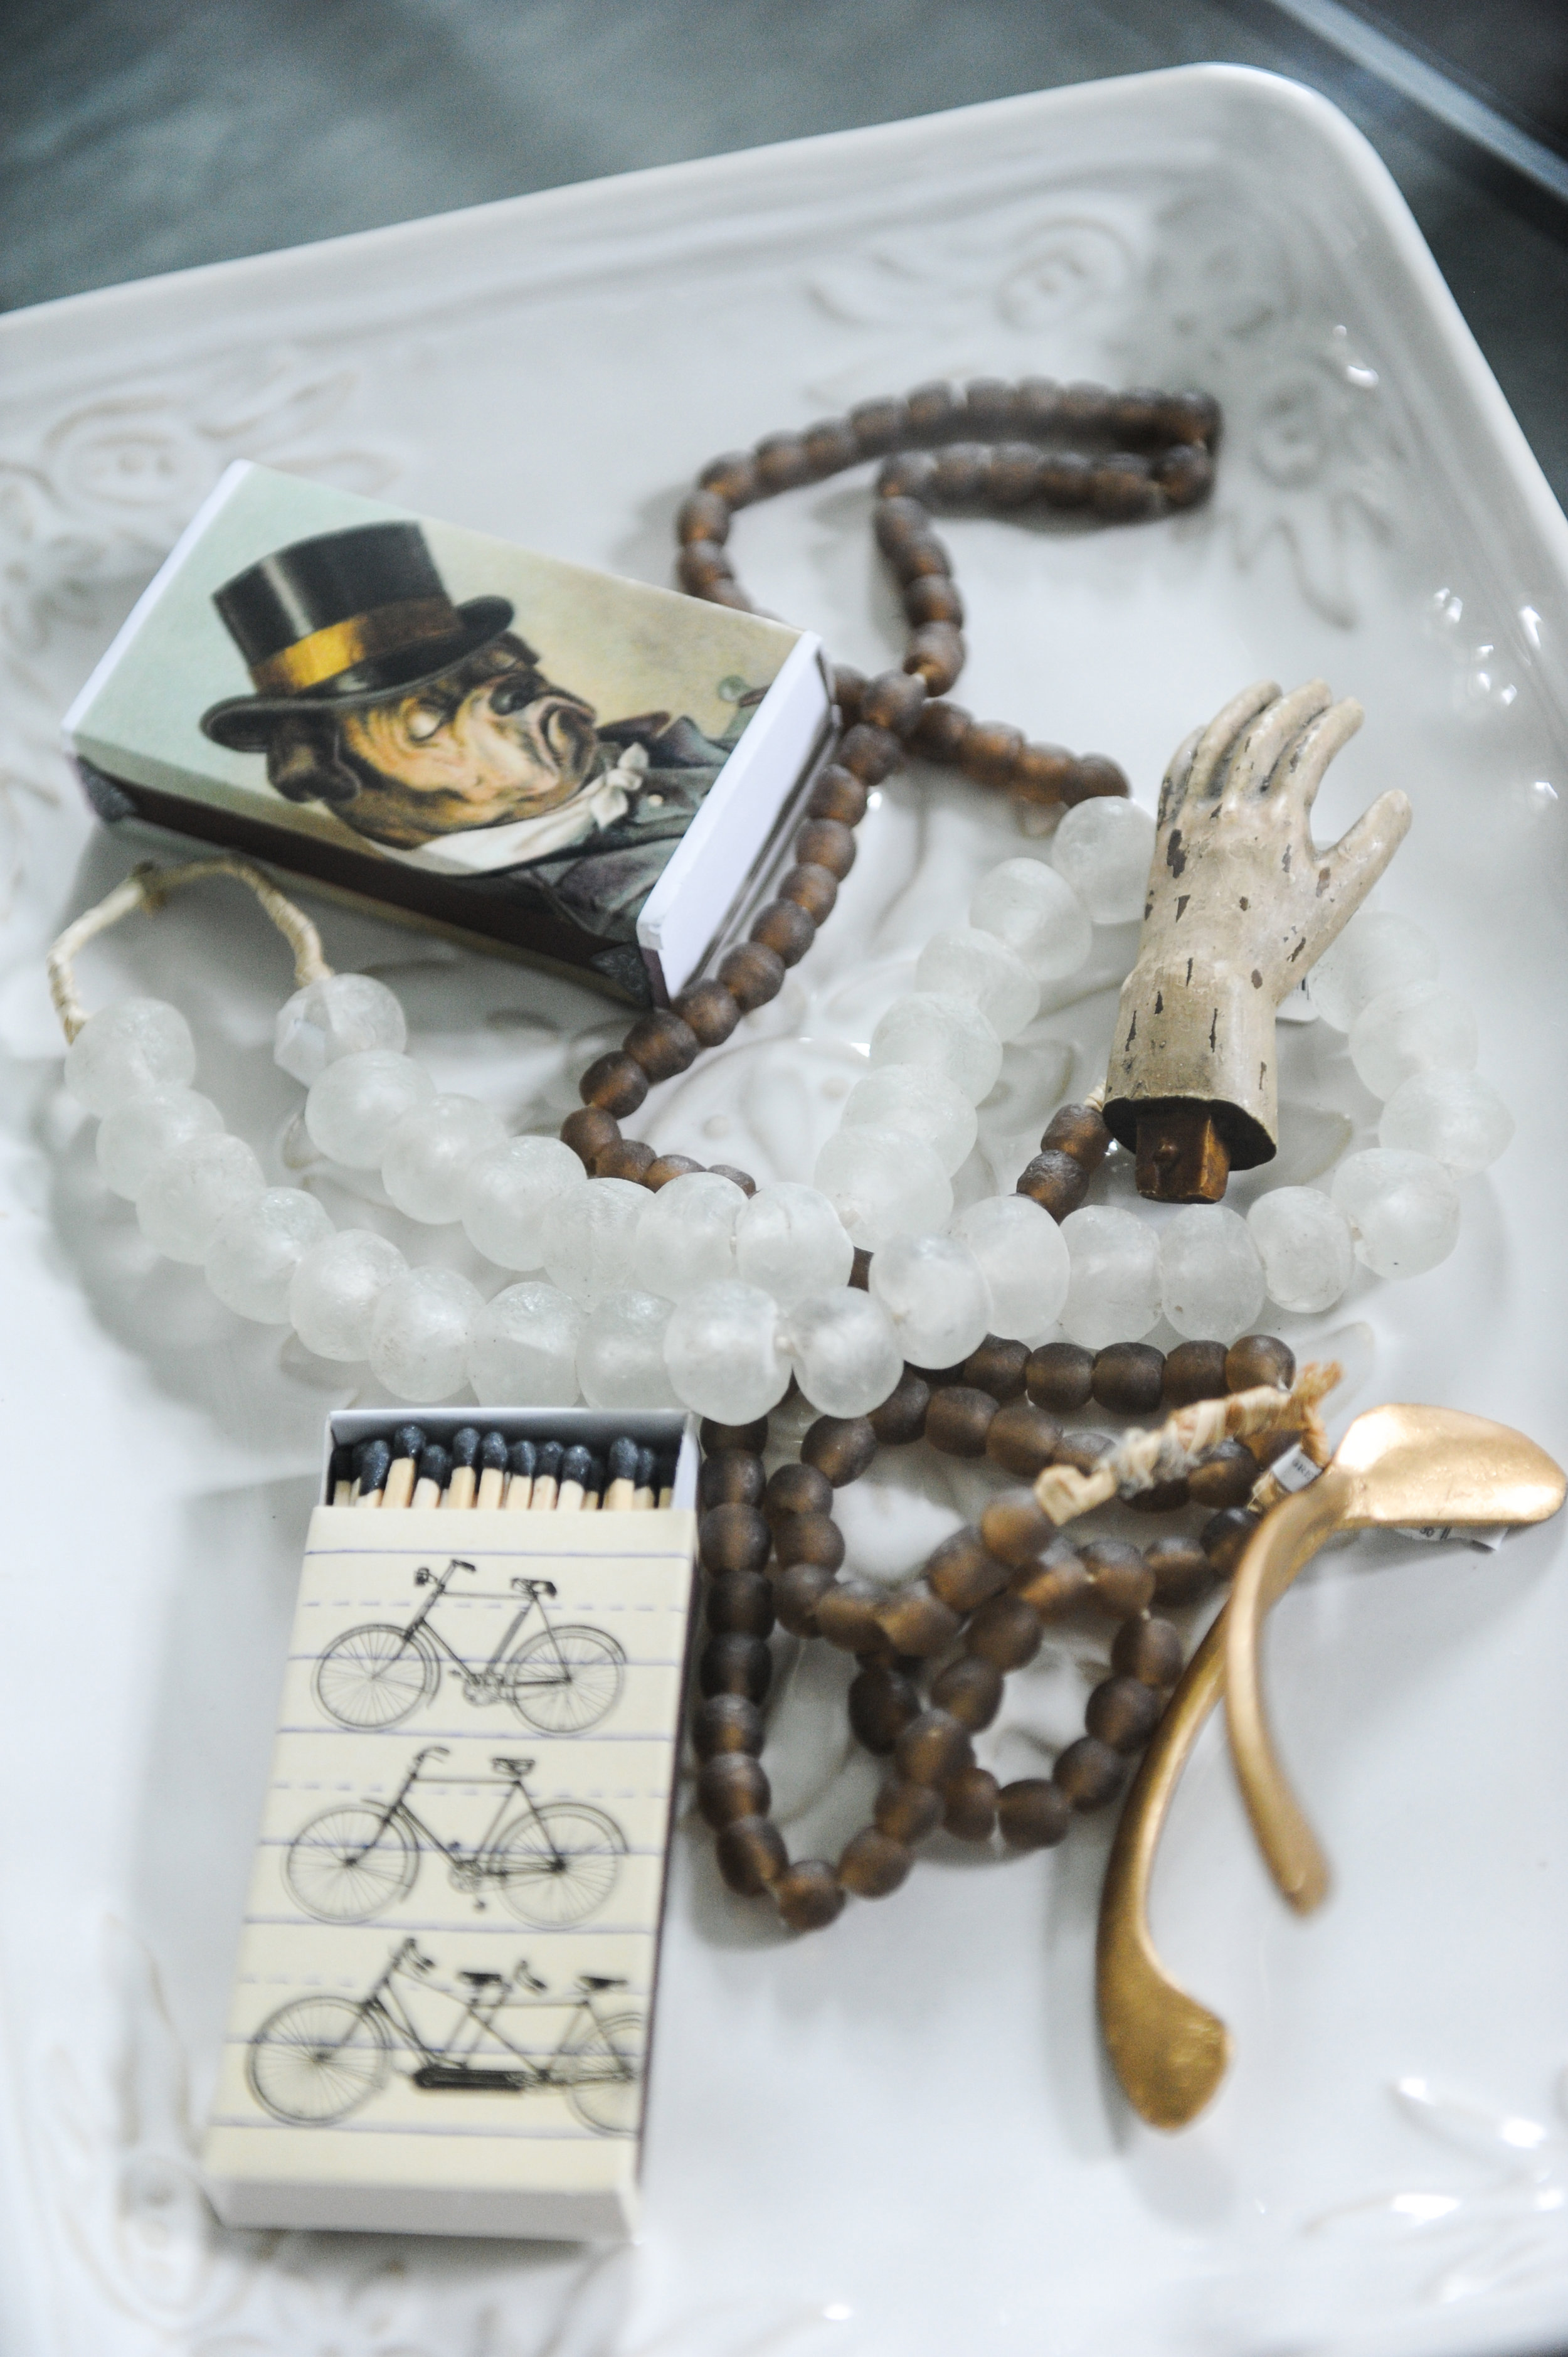 A white ceramic tray sits on a glass coffee table. There are various items on the tray, such as beaded necklaces, matchboxes, a golden wishbone and a tiny ceramic hand.